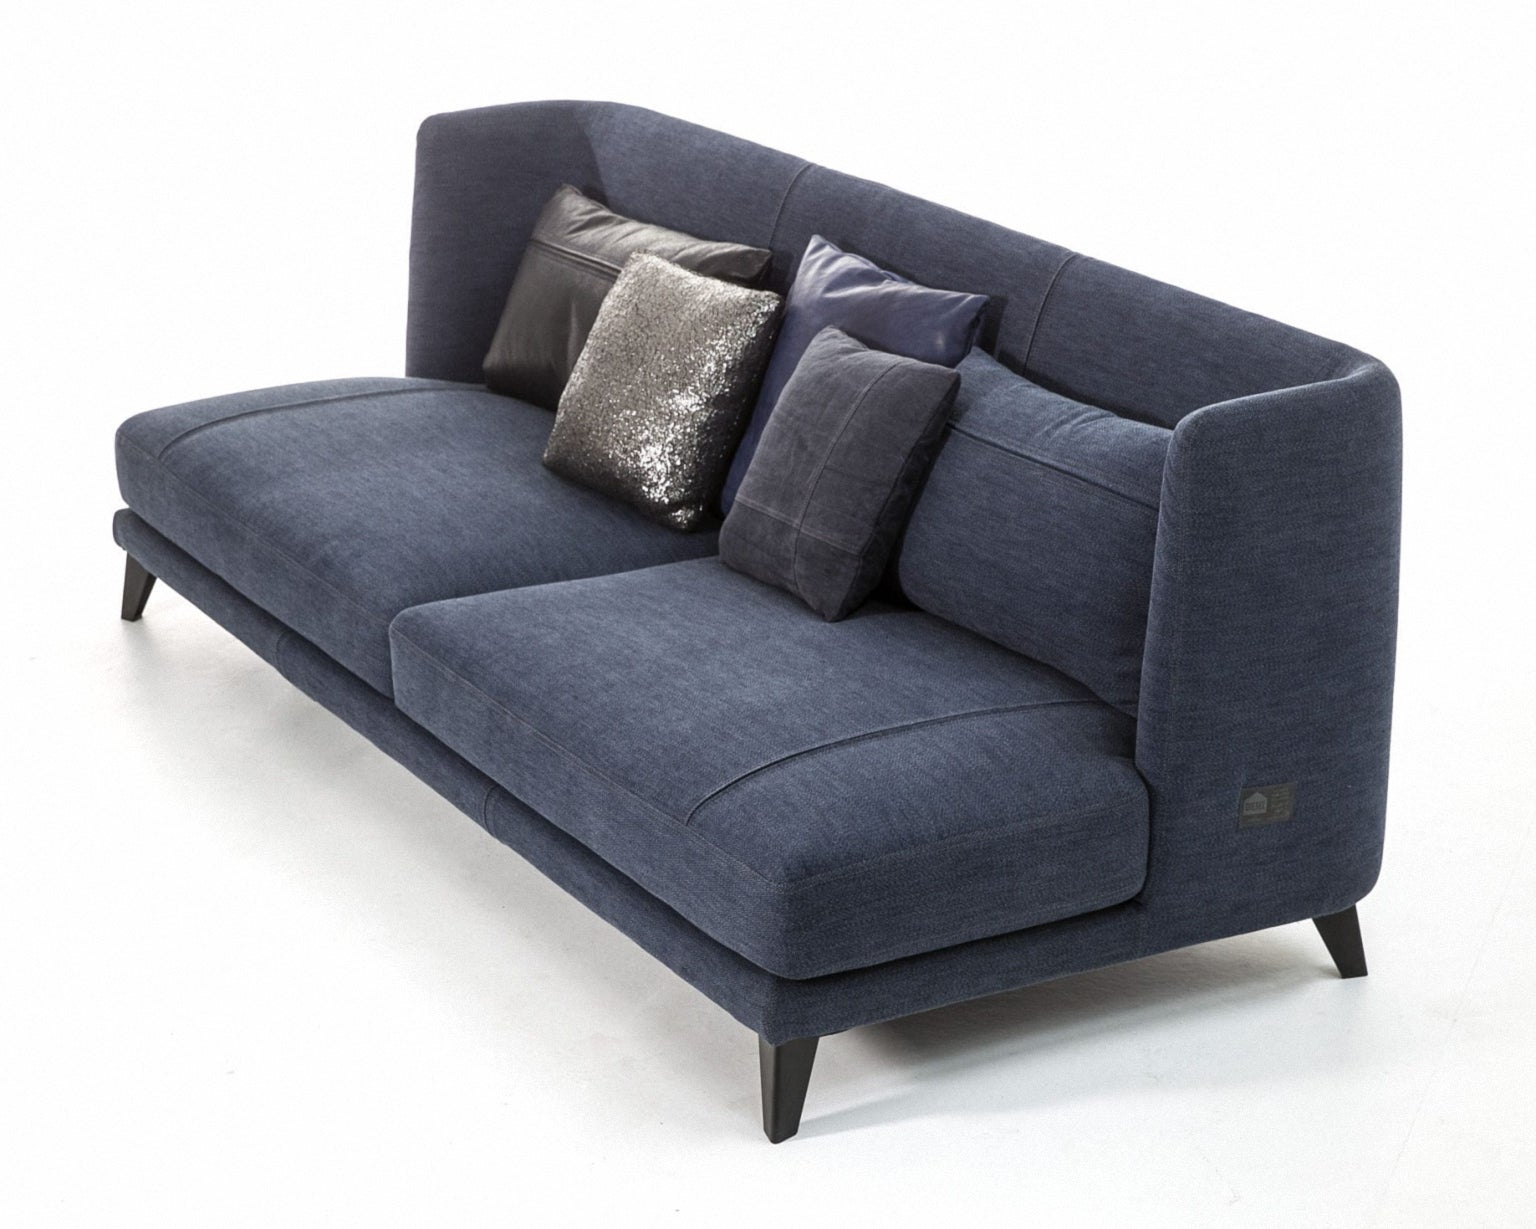 Gimme More Three Seat Fabric Sofa With Fiber Or Goose By Moroso For Sel At 1stdibs